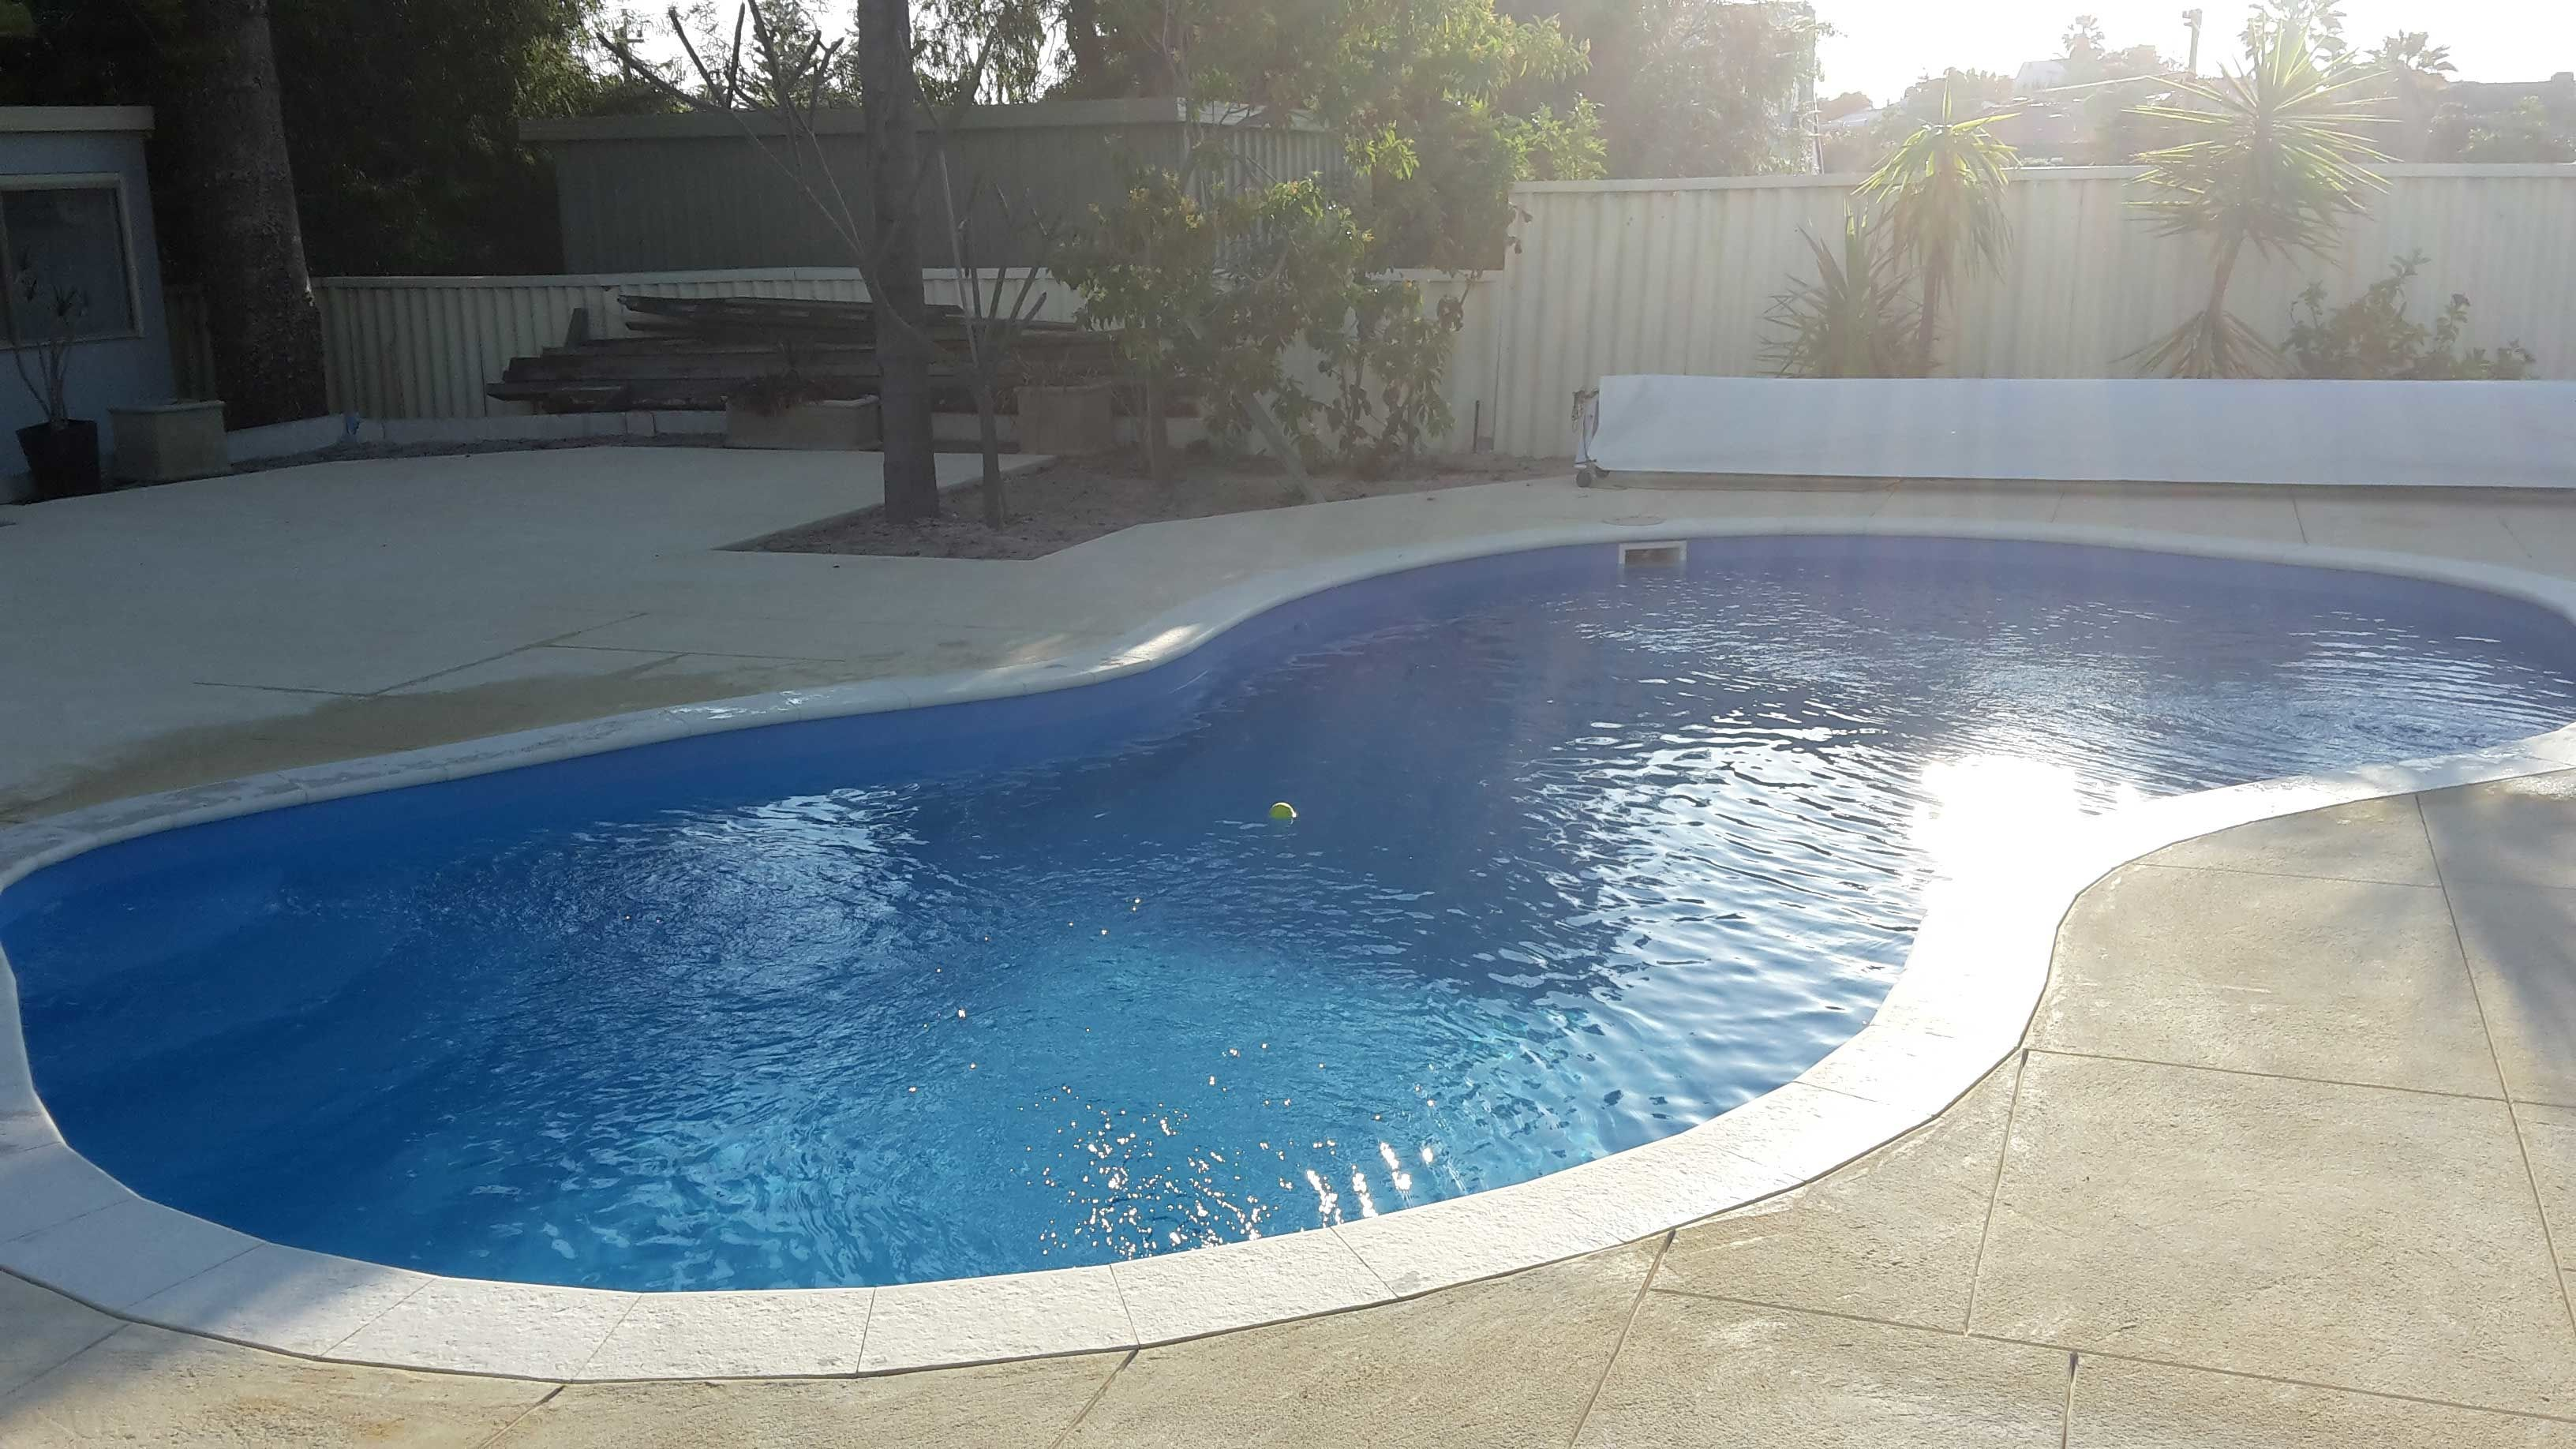 Contact Us At Innovation Pool Resurfacing Perth If You Wish To Get A Resurfacing Process Done For Your Old And Wor Backyard Fences Front Yard Fence Easy Fence